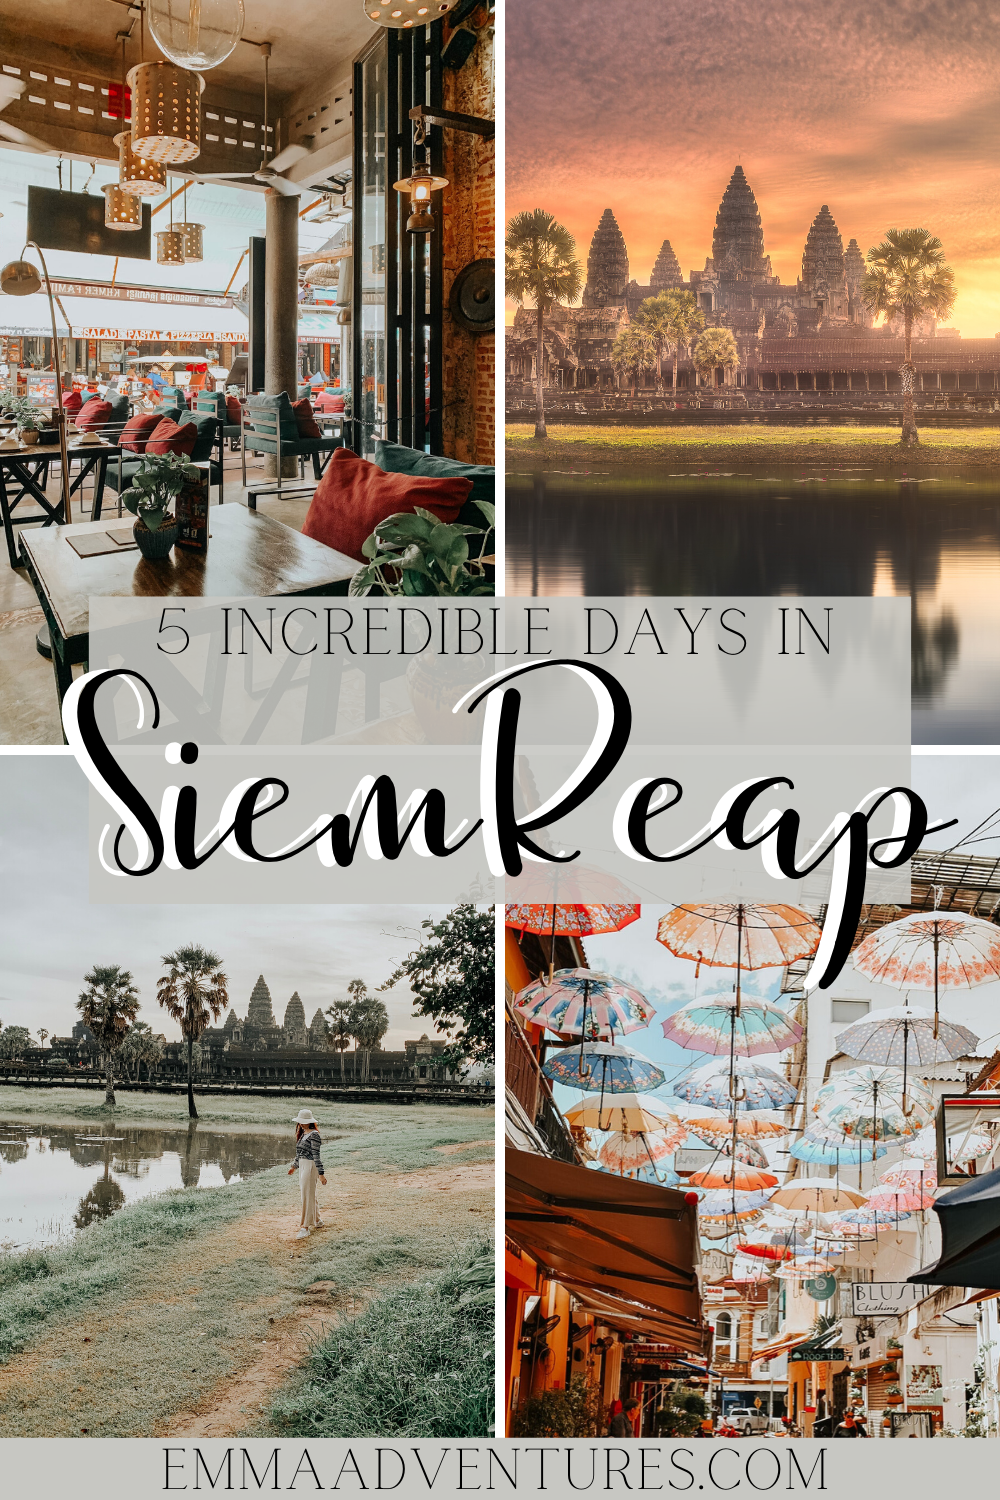 The ultimate travel guide to Siem Reap, Cambodia! These are the 9 best things to see and do in Siem Reap, plus the best places to eat and drink in Siem Reap, where to stay, plus Cambodia travel tips! Don't miss checking out this epic Siem Reap travel guide! #siemreap #cambodia #cambodiatravel #southeastasia